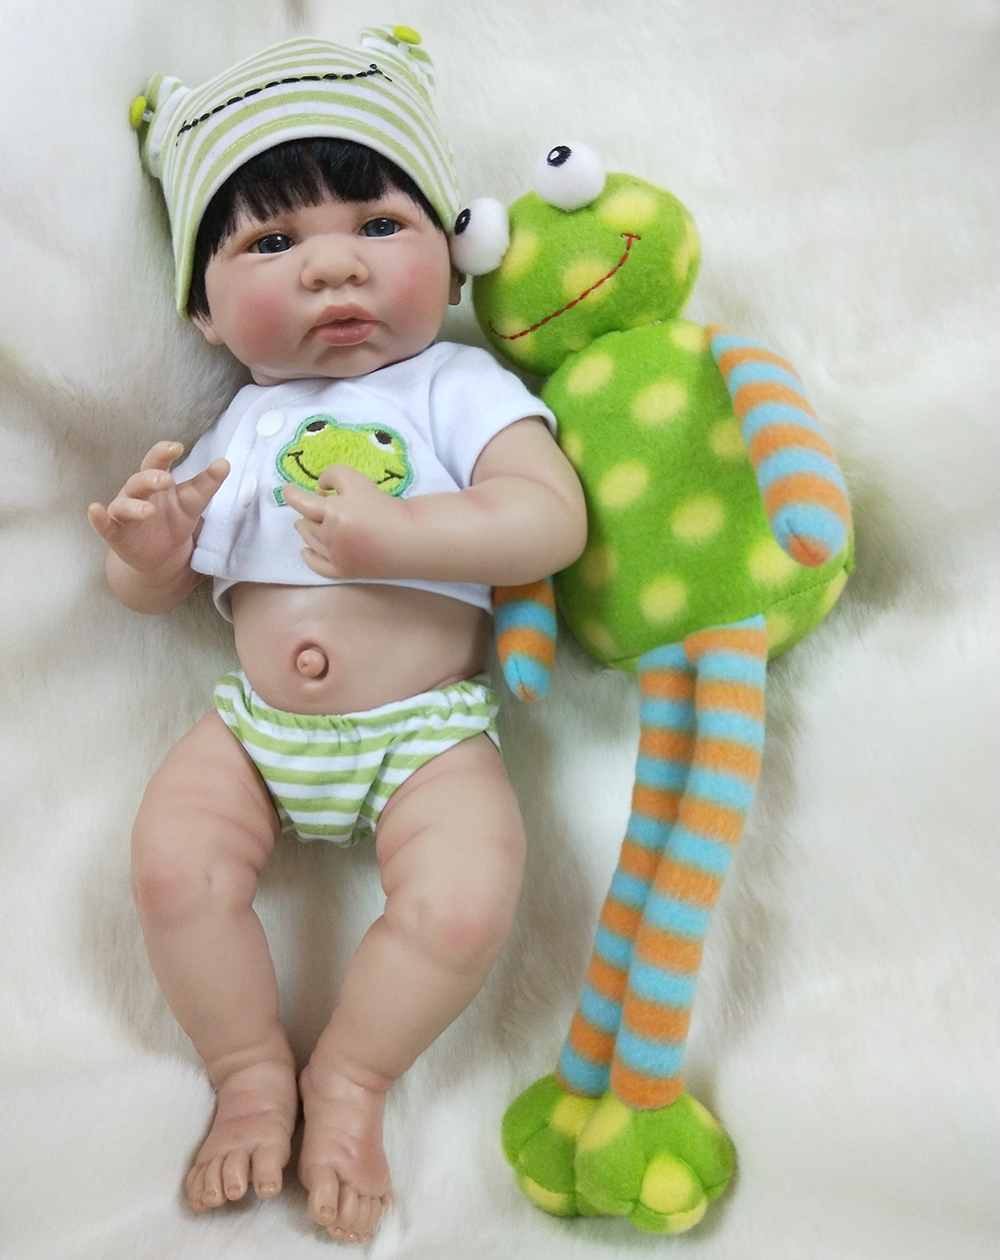 Pursue 14 Lifelike Baby Alive Soft Vinyl Full Body Silicone Reborn Baby Girl Boy Doll Toys for Children Kids Birthday Gift Doll 50cm soft body silicone reborn baby doll toy lifelike baby reborn sleeping newborn boy doll kids birthday gift girl brinquedos